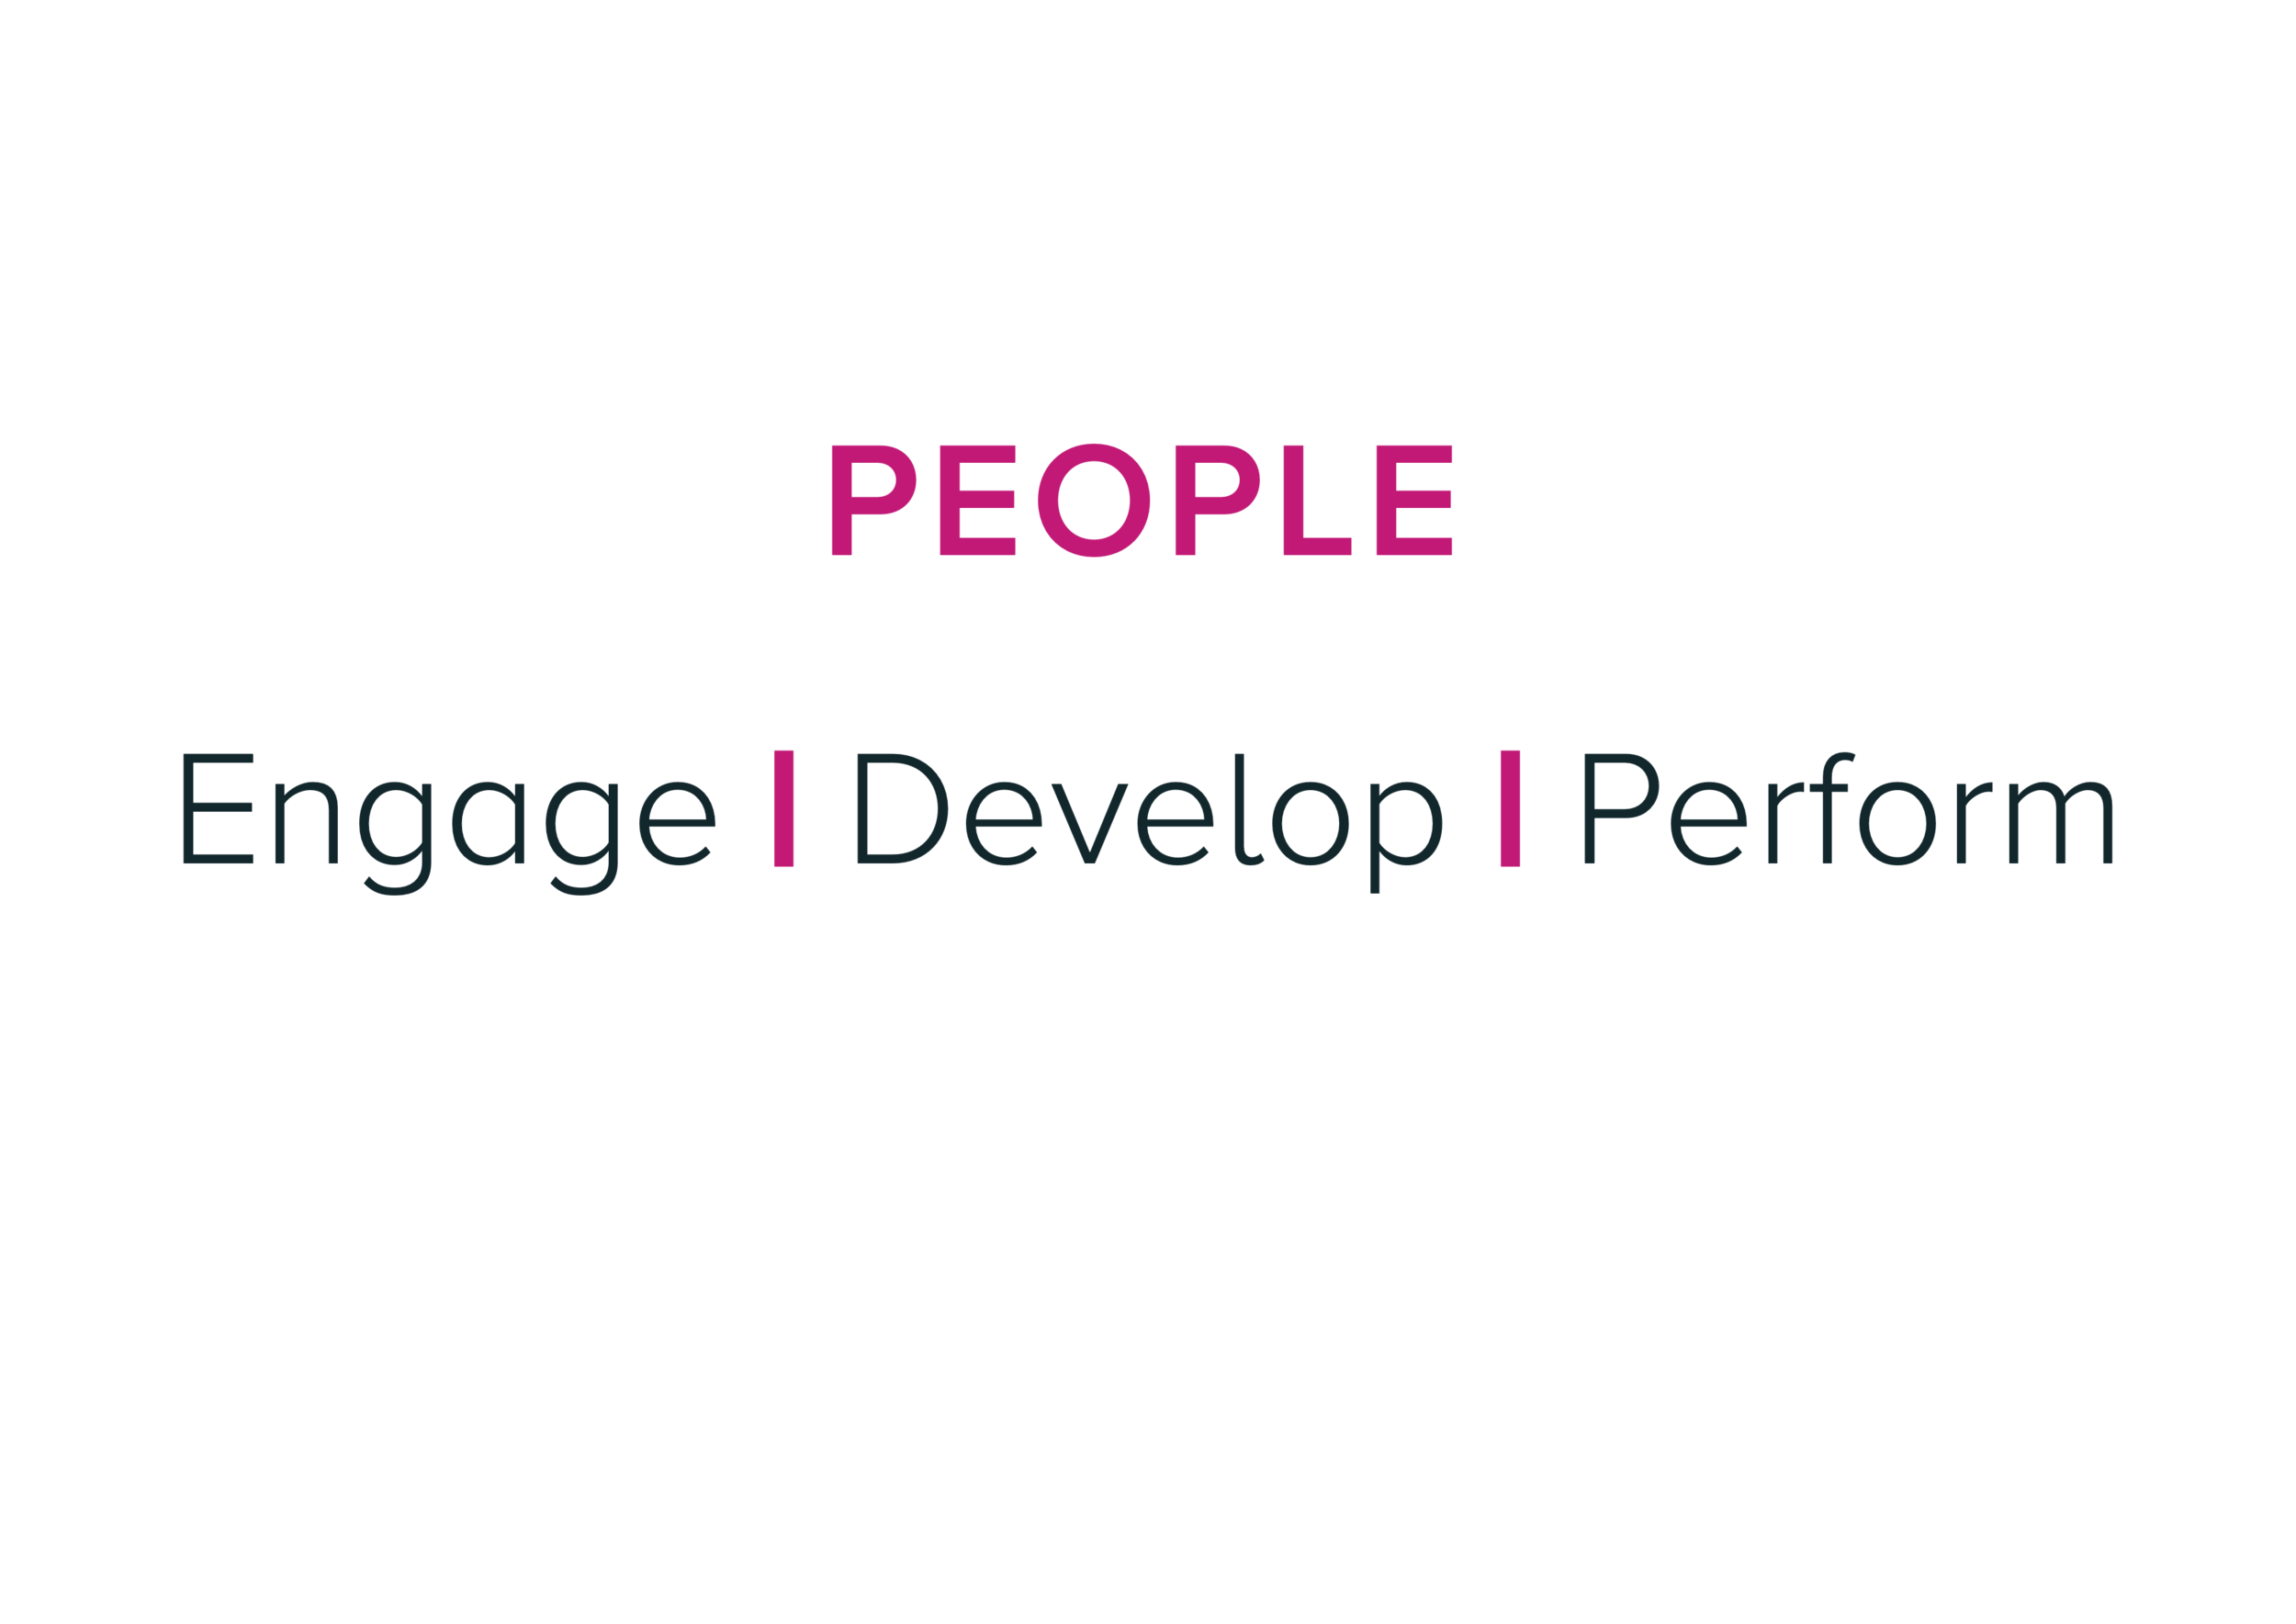 People Logo 2019.png